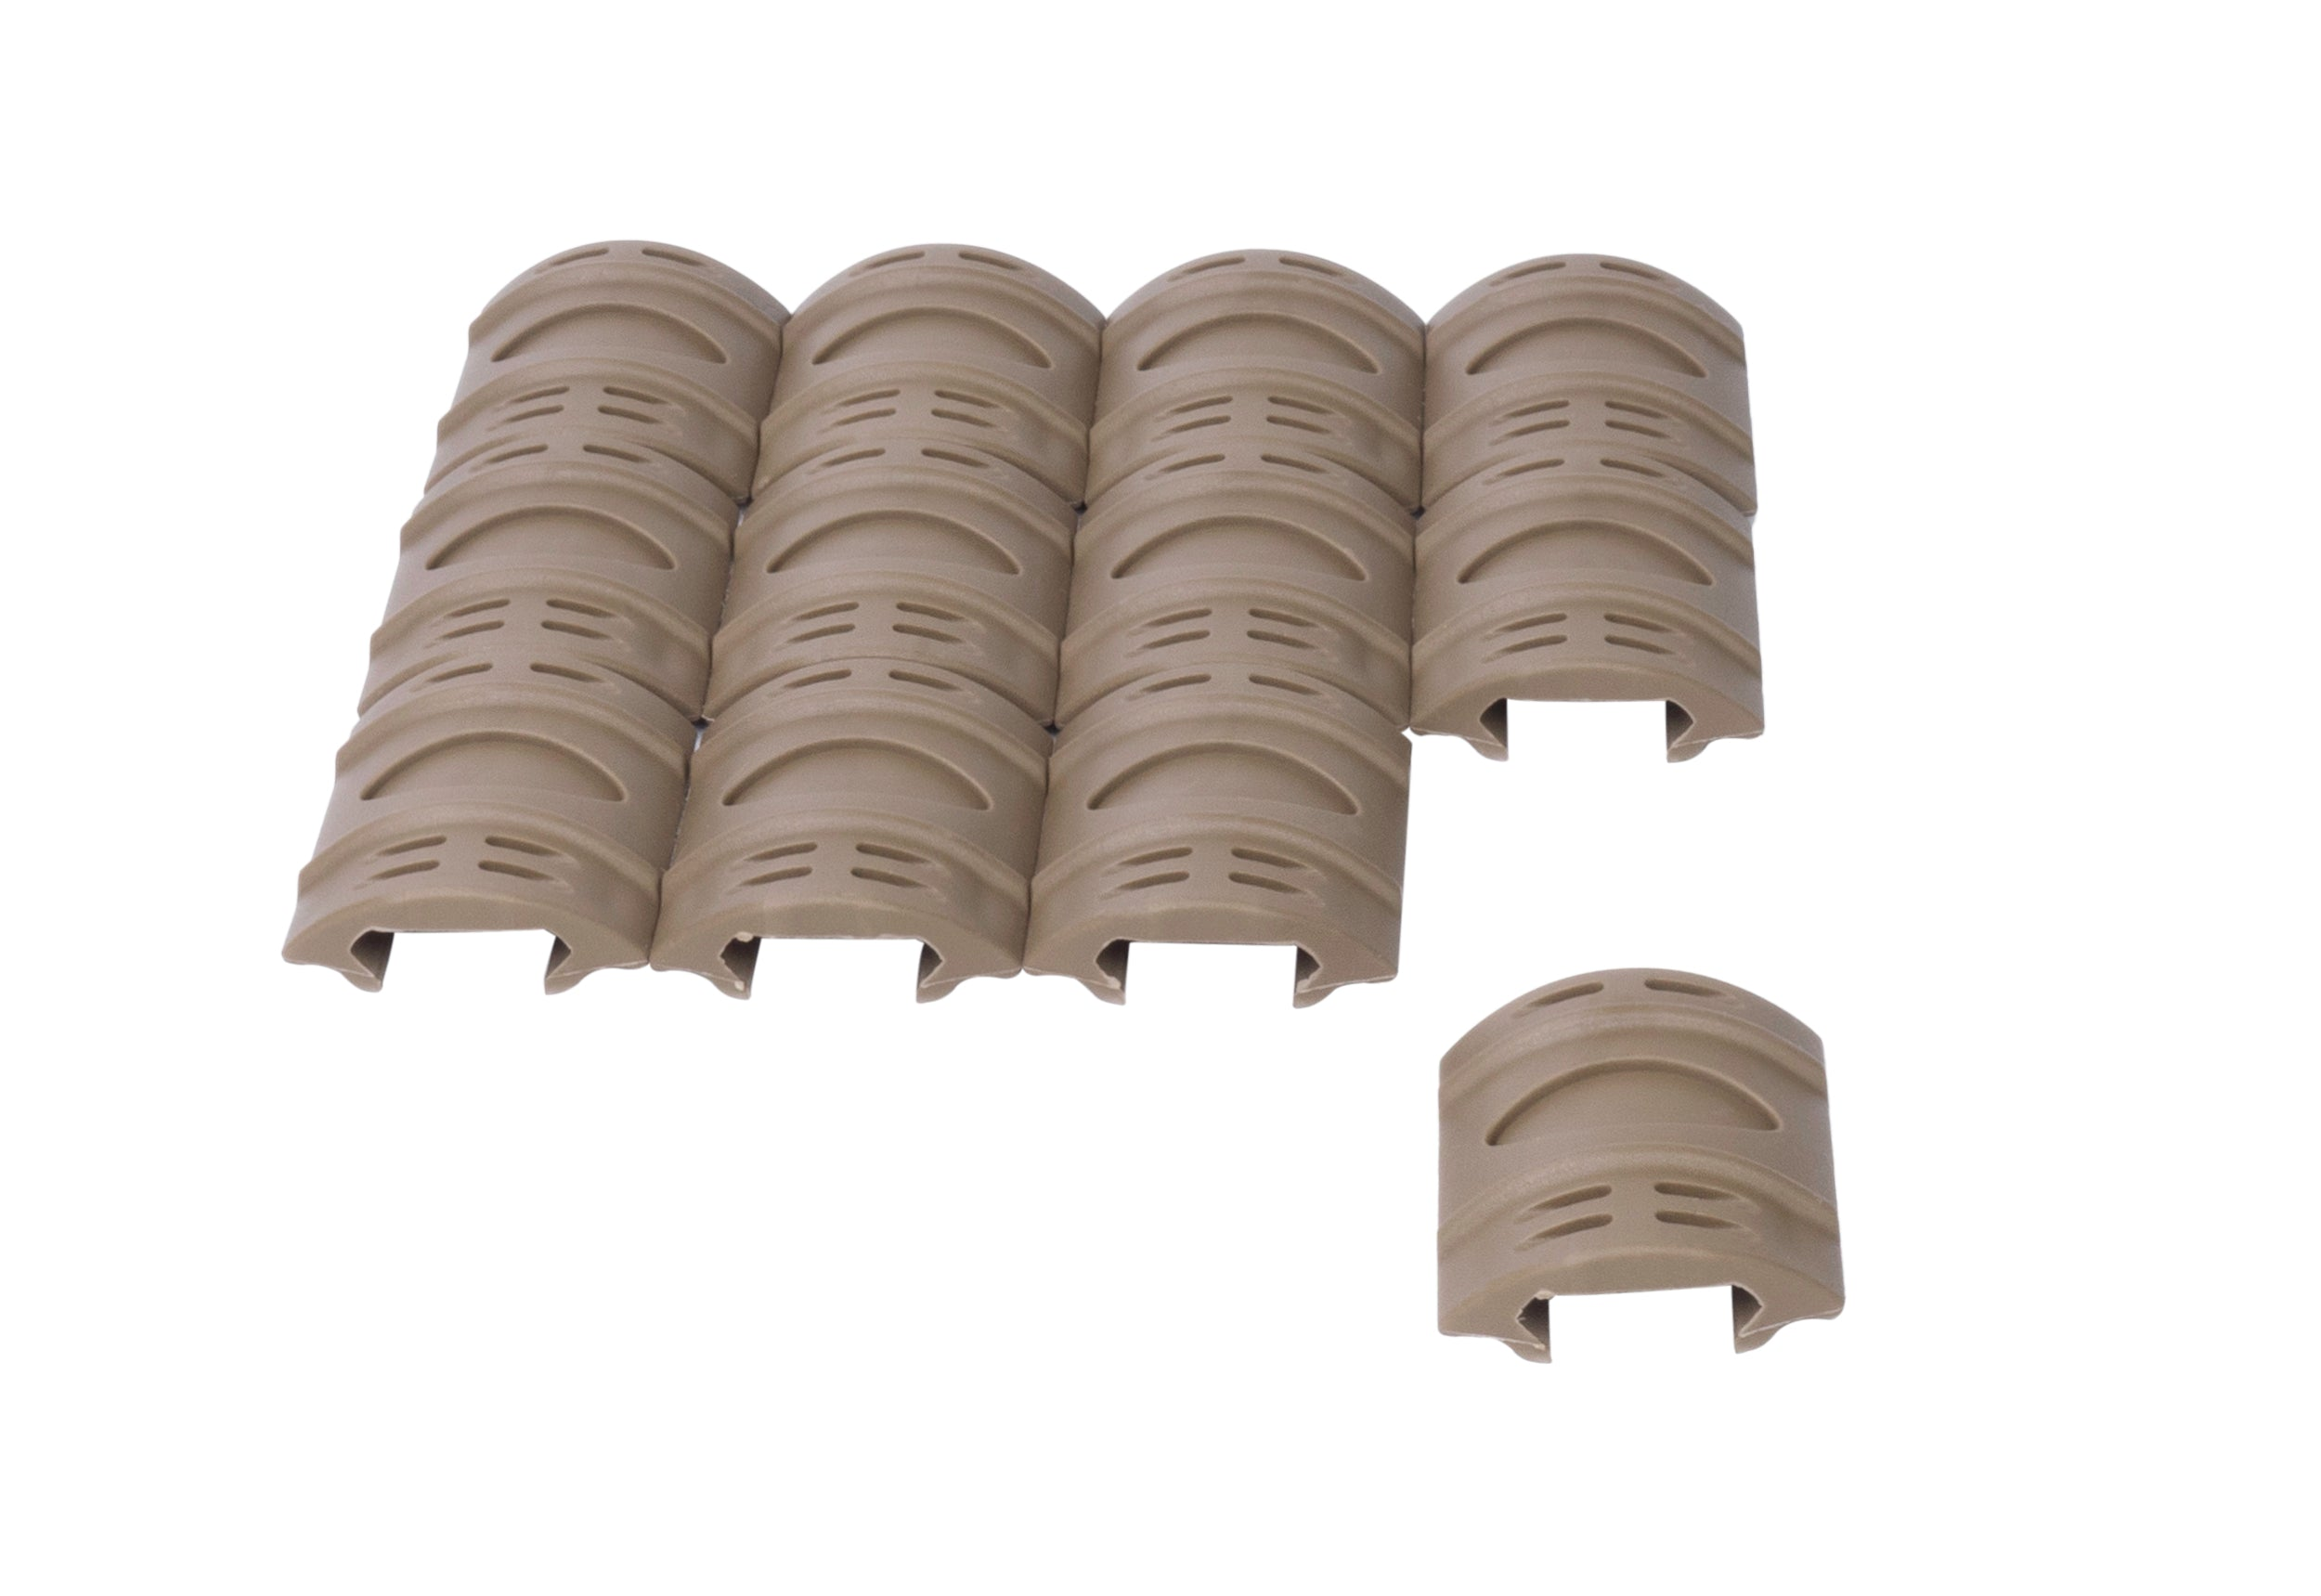 picatinny rail covers 2 inch 12pc set monstrum tactical